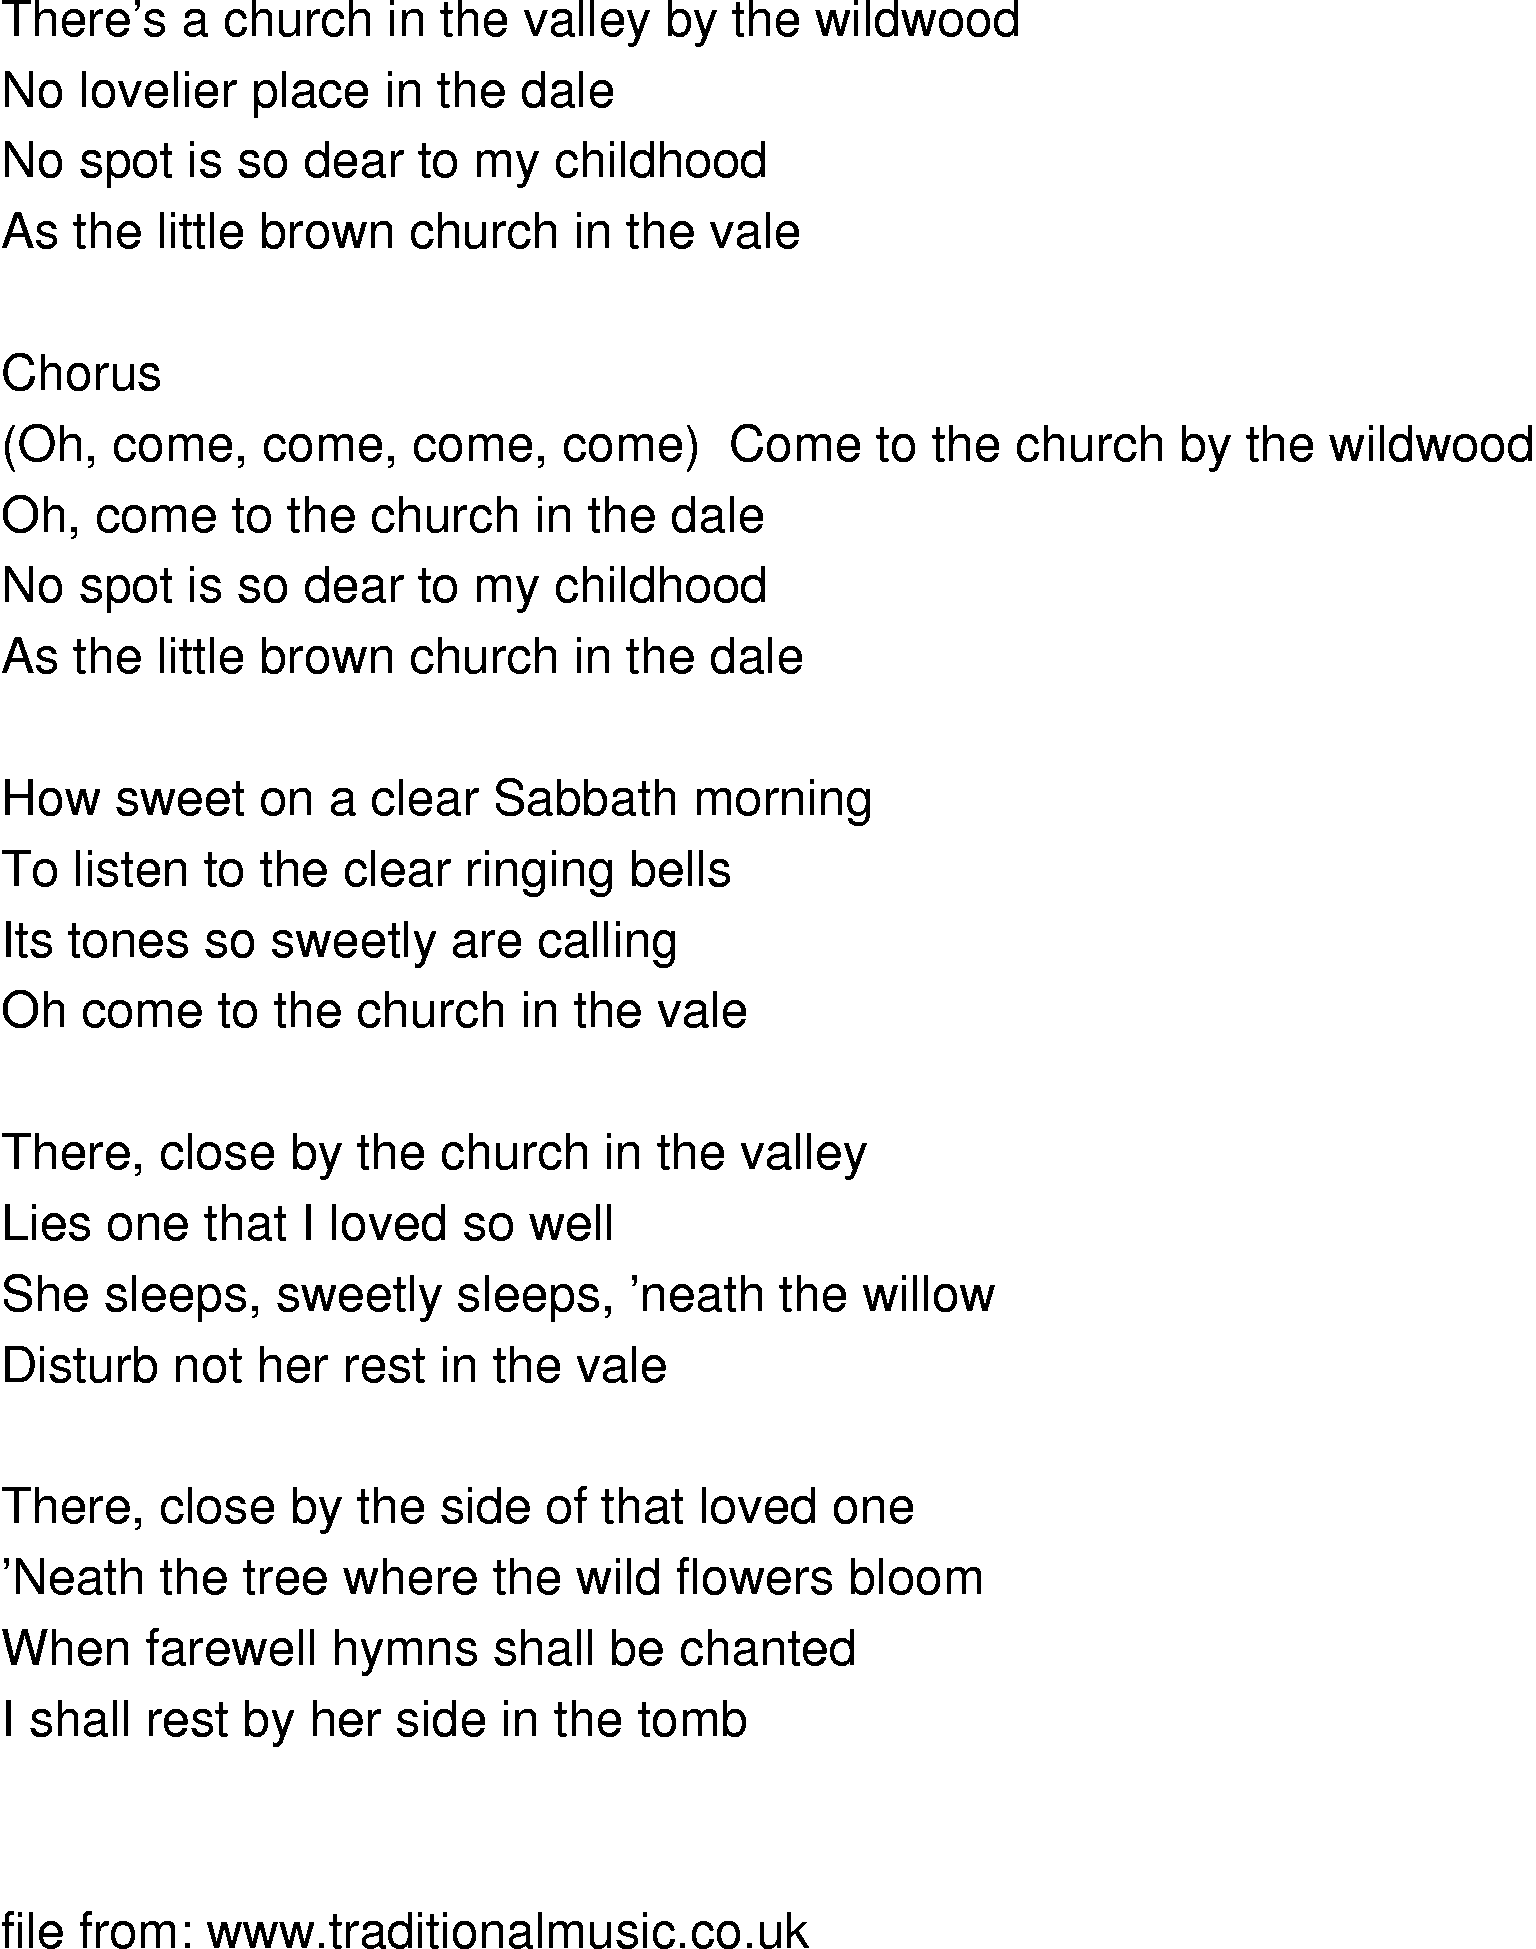 Old-Time Song Lyrics - Church In The Wildwood